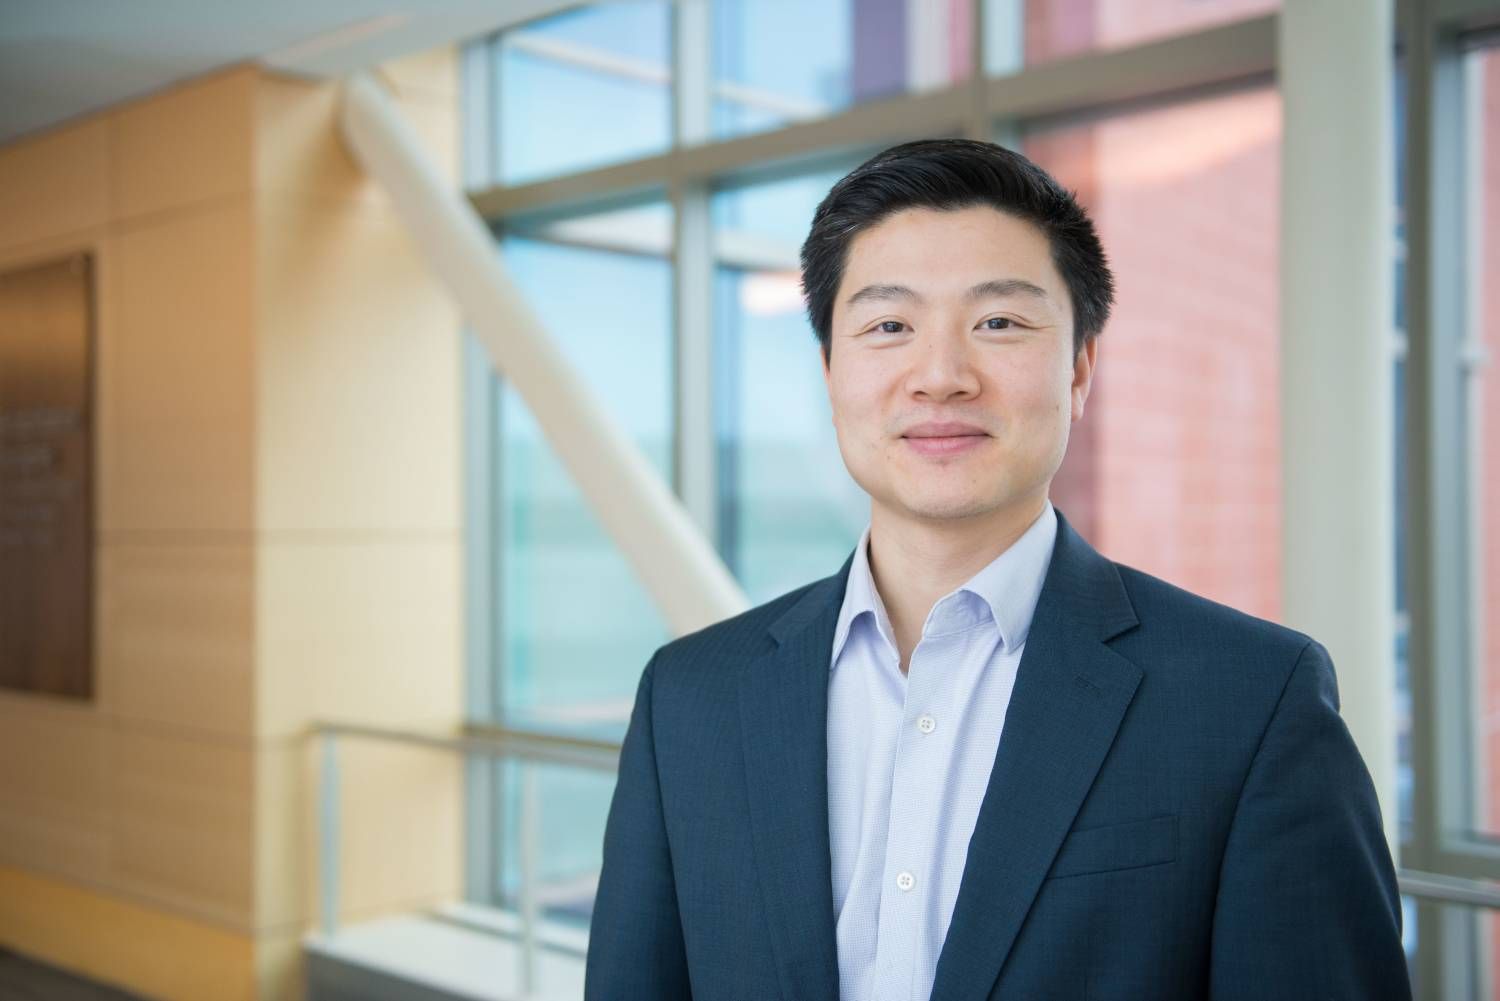 Dr. Walter Truong